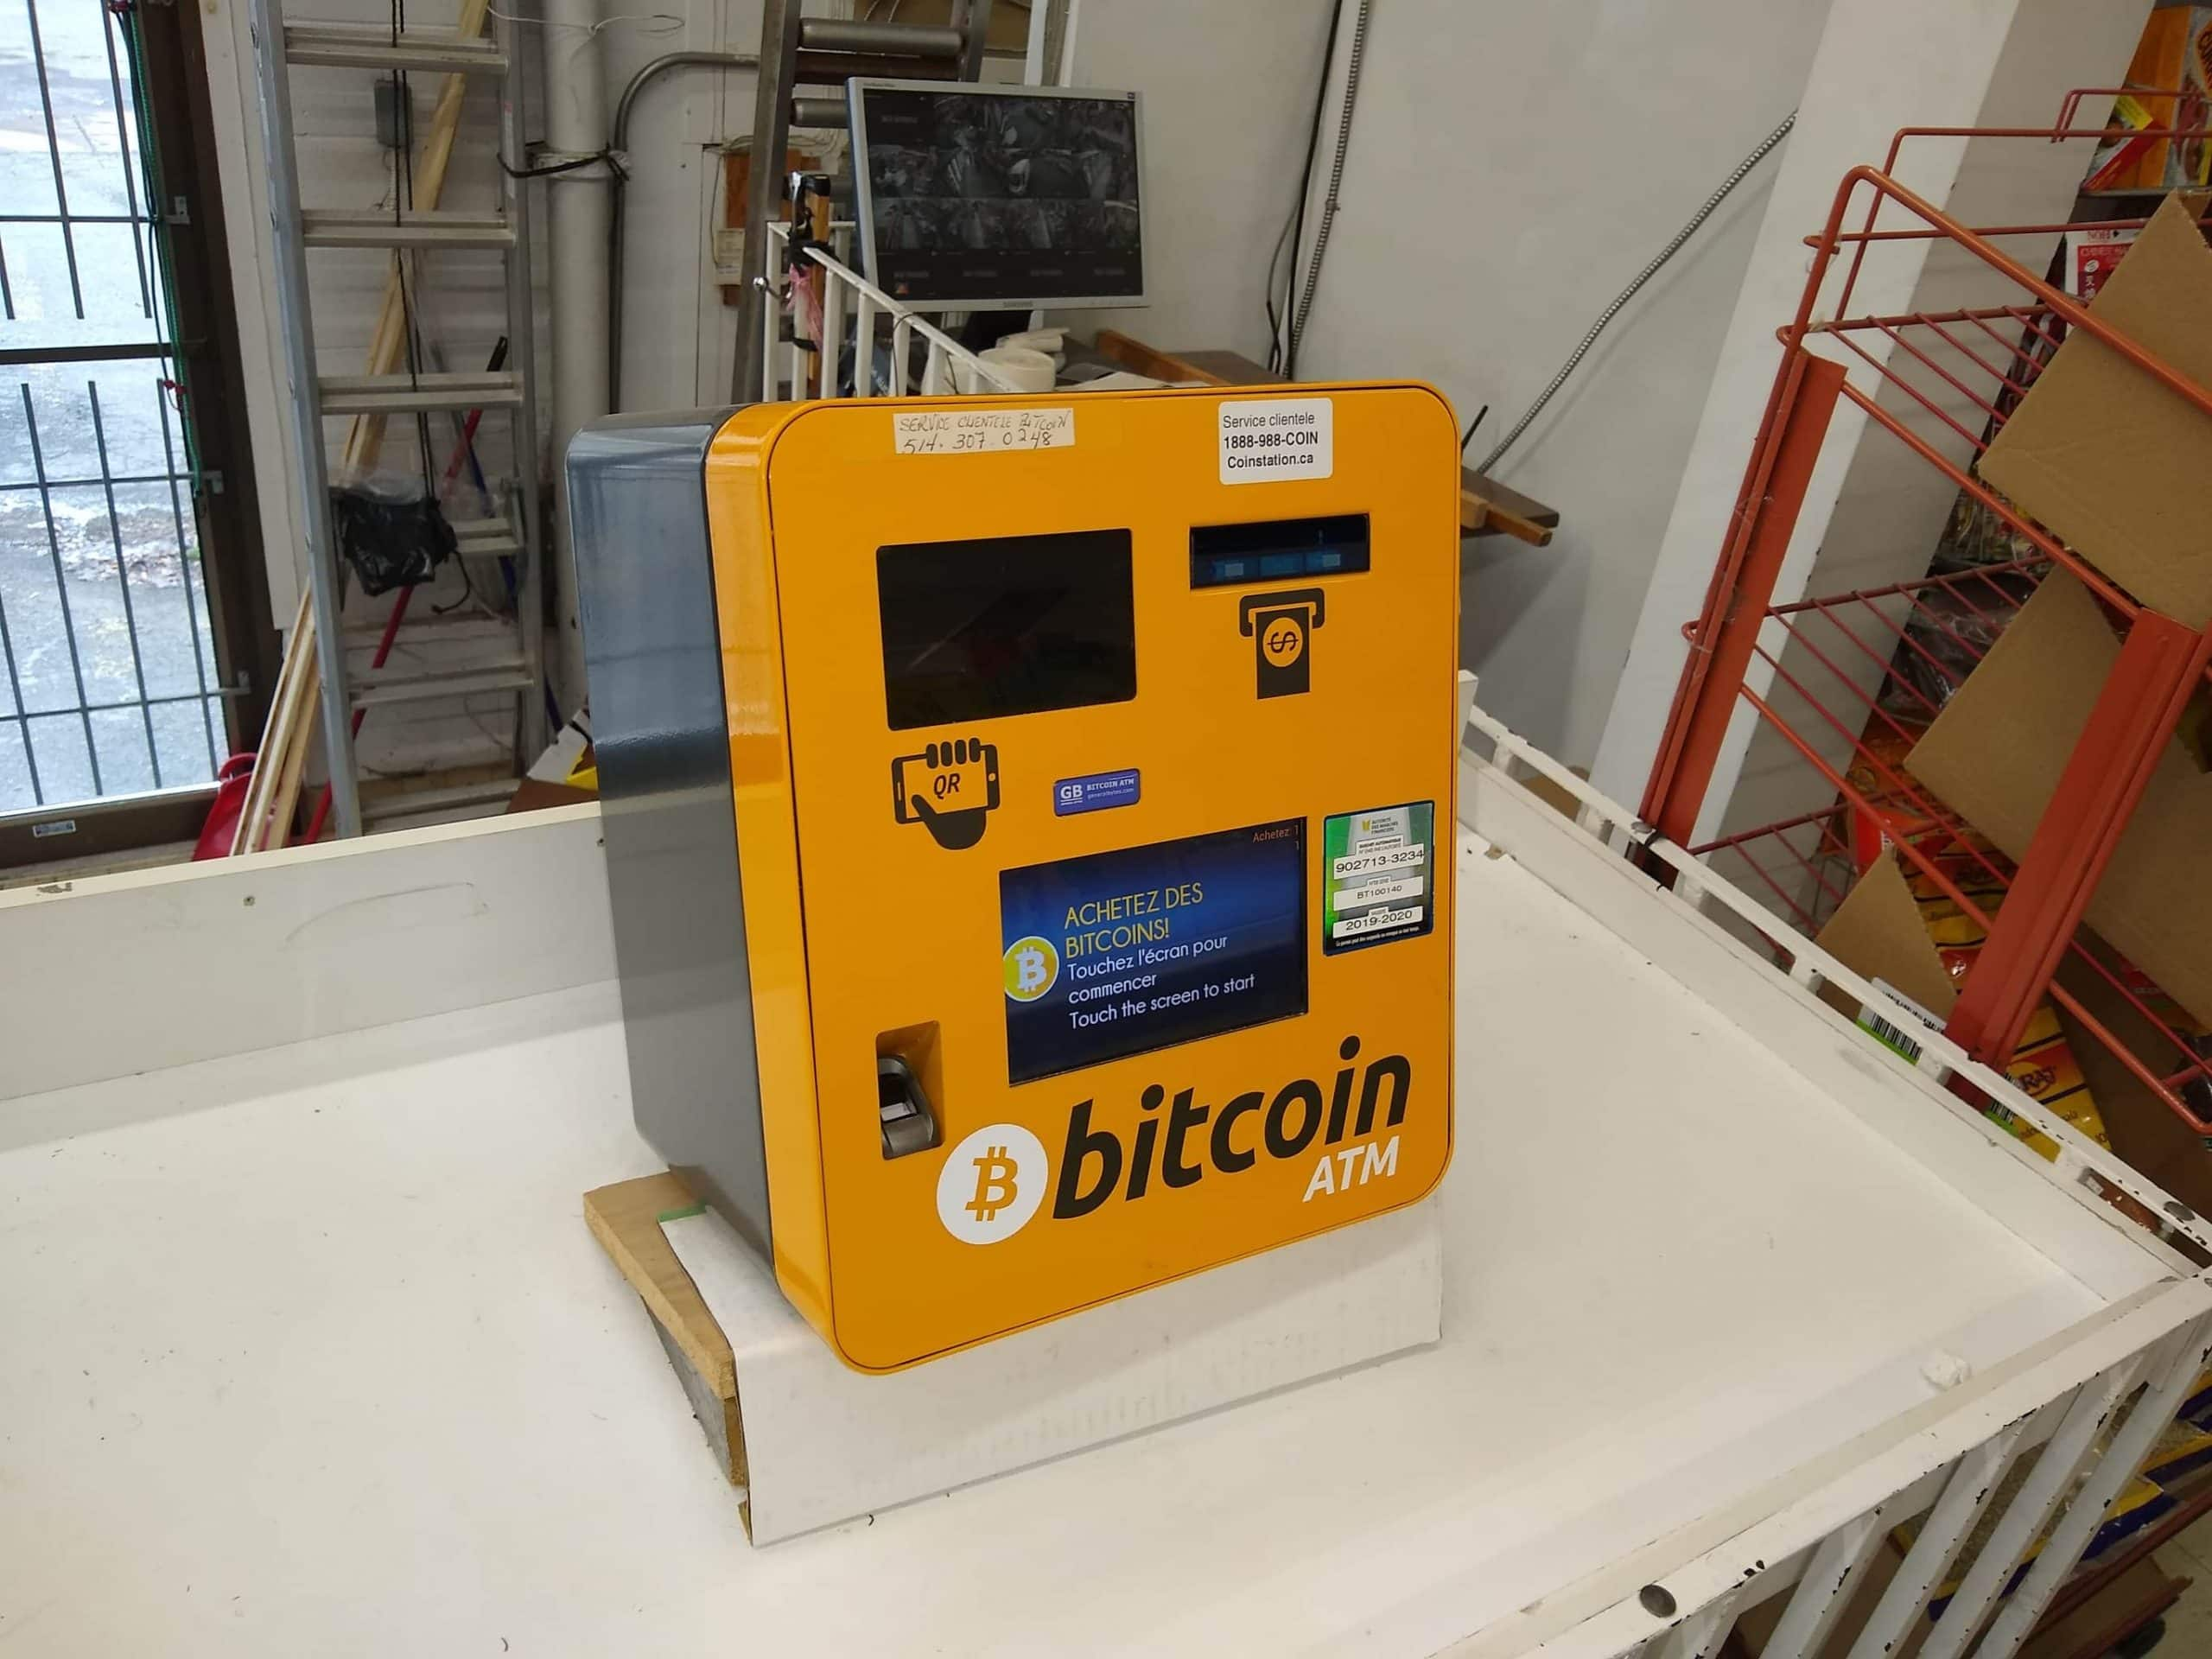 Bitcoin ATM in Kanada